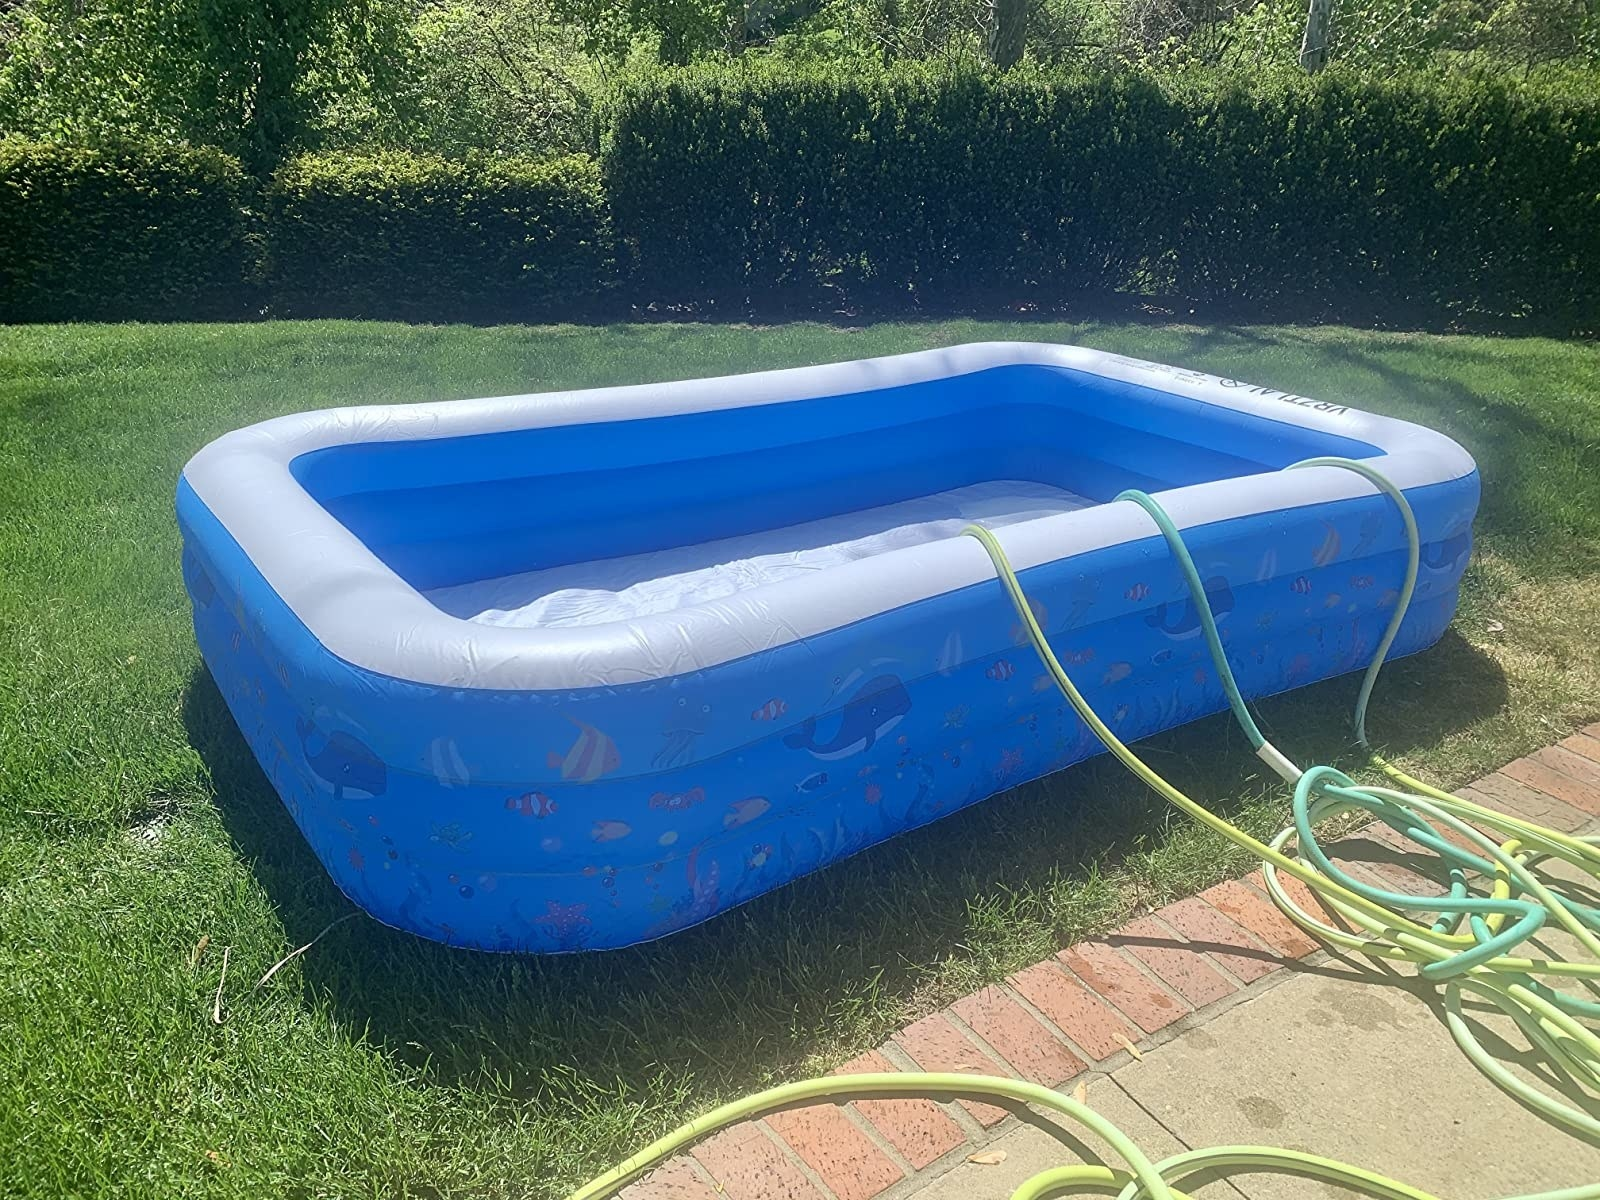 reviewer image of an inflated full-sized pool being filled with water from three hoses